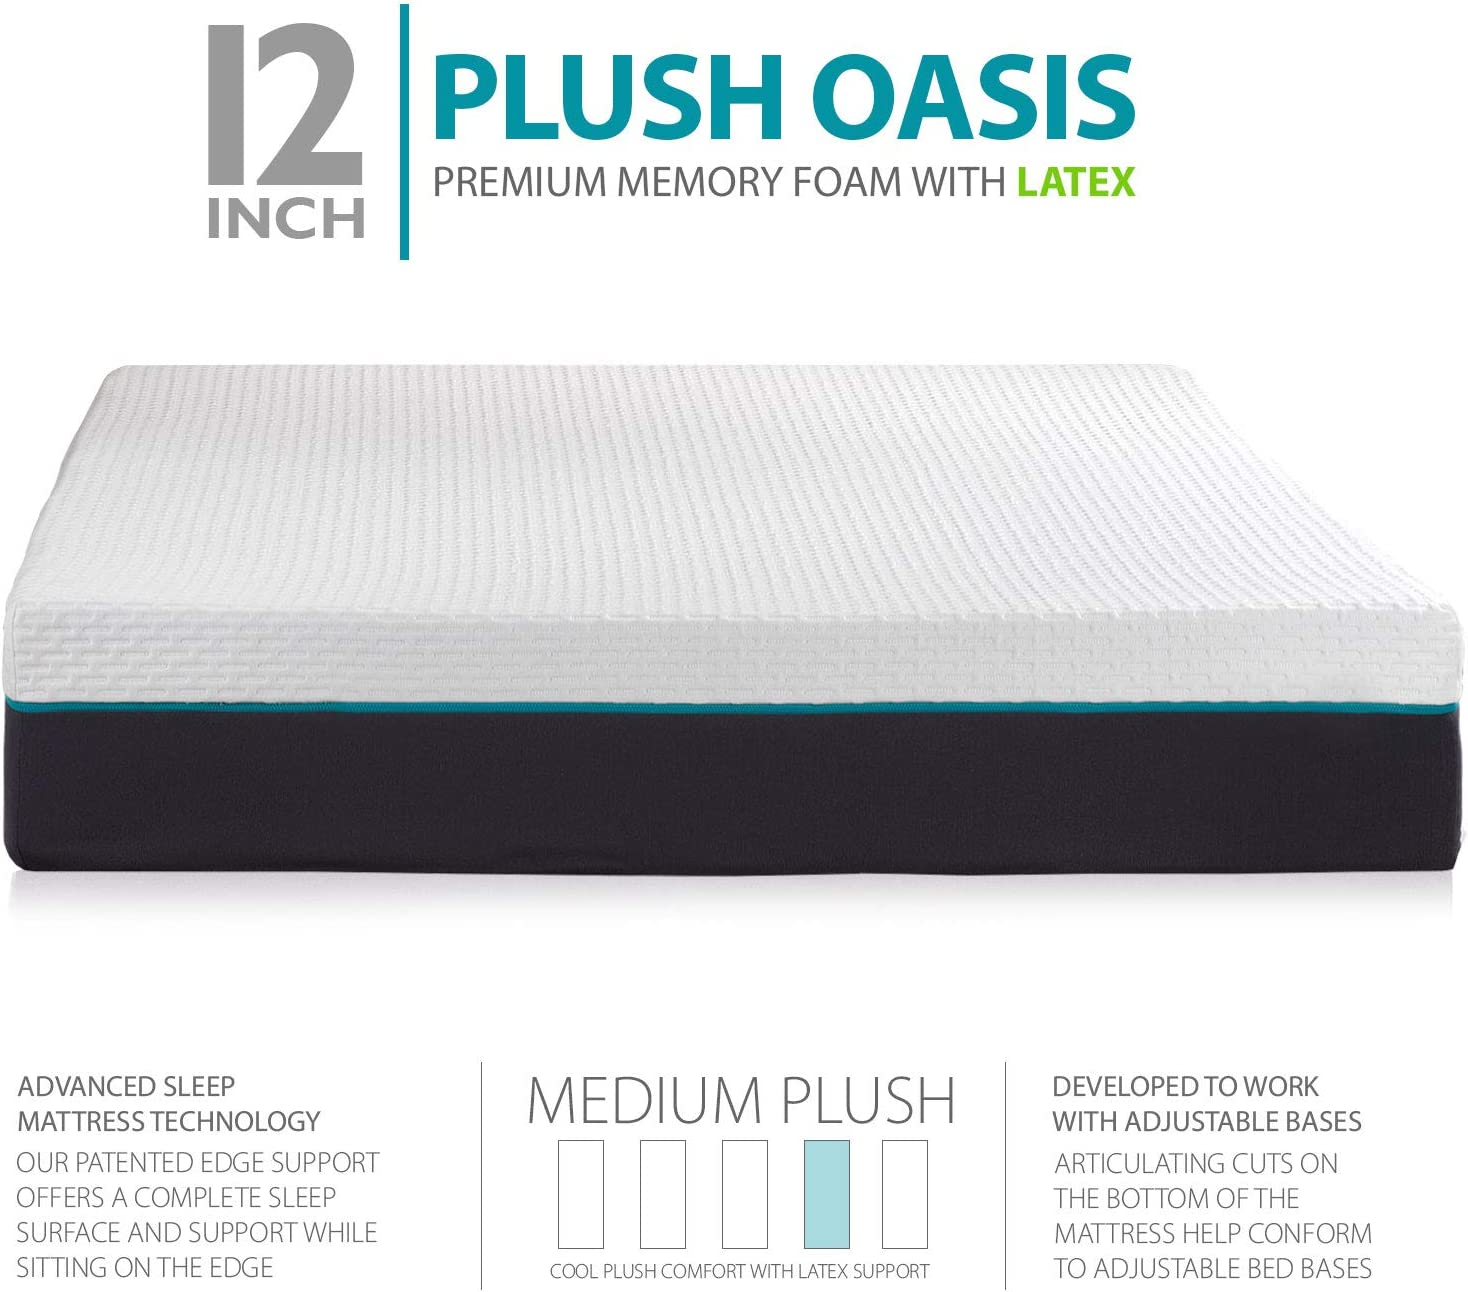 Cal King Split Blissful Nights 12 Premium Cool Medium Plush Ventilated Memory Foam with Latex Support Mattress and Adjustable Bed Frame Combo